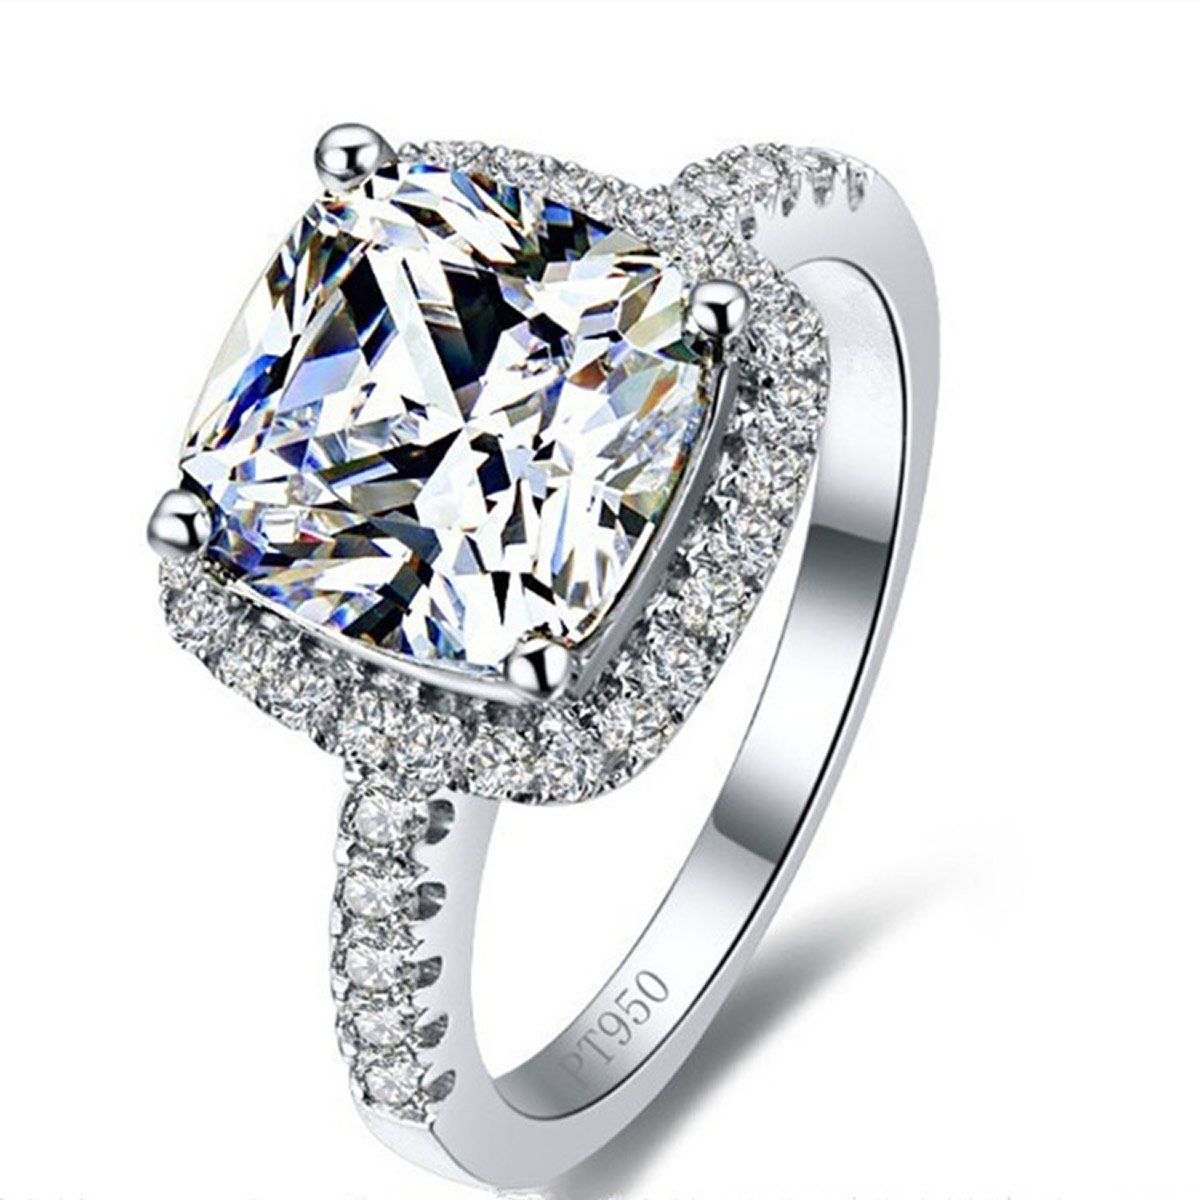 3 Carat Cushion Cut Sona Engagement Ring CZ Solitaire Engagement Ring Wedding Halo 925 Sterling Silver Erllo